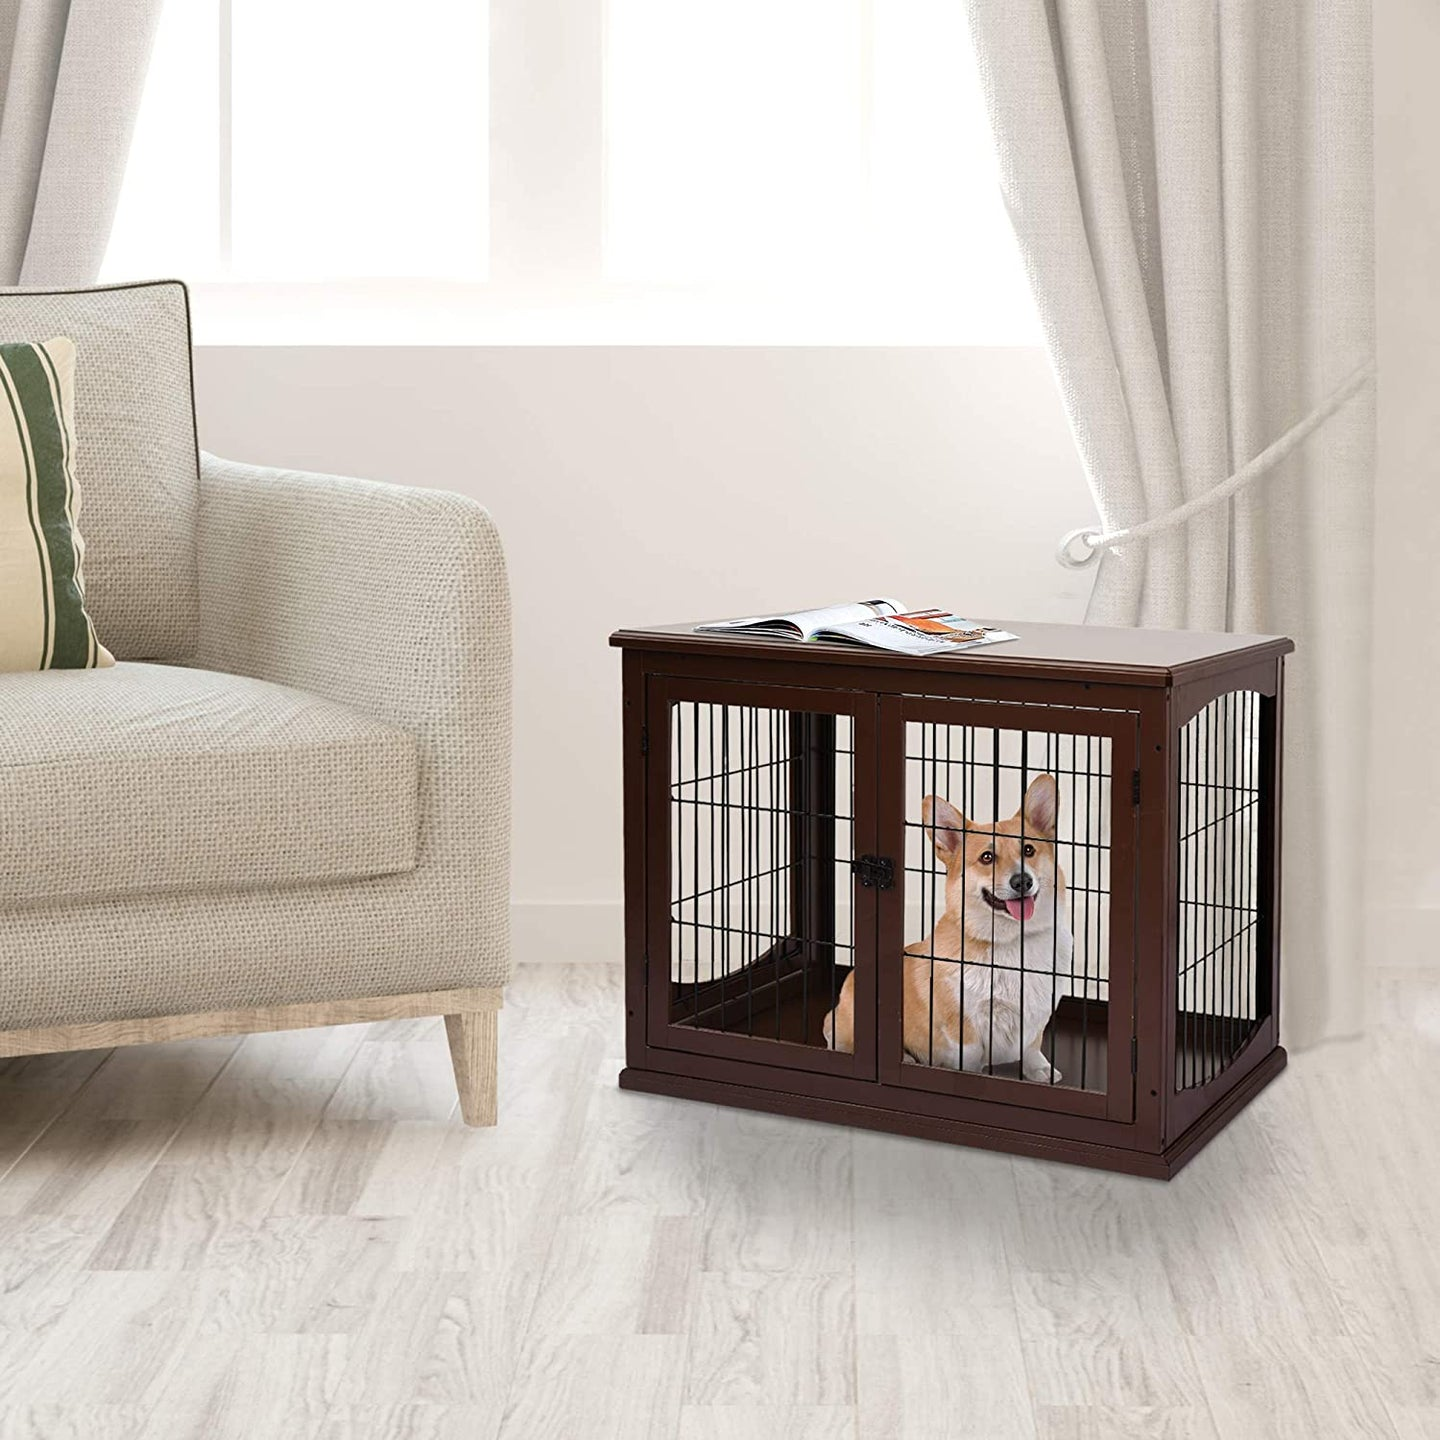 PawHut Pet Crate End Table Wooden Dog Kennel Cage w/Metal Wire 3 Doors Latches Small Animal House Modern Design Indoor Brown 58.5 x 81 x 66 cm